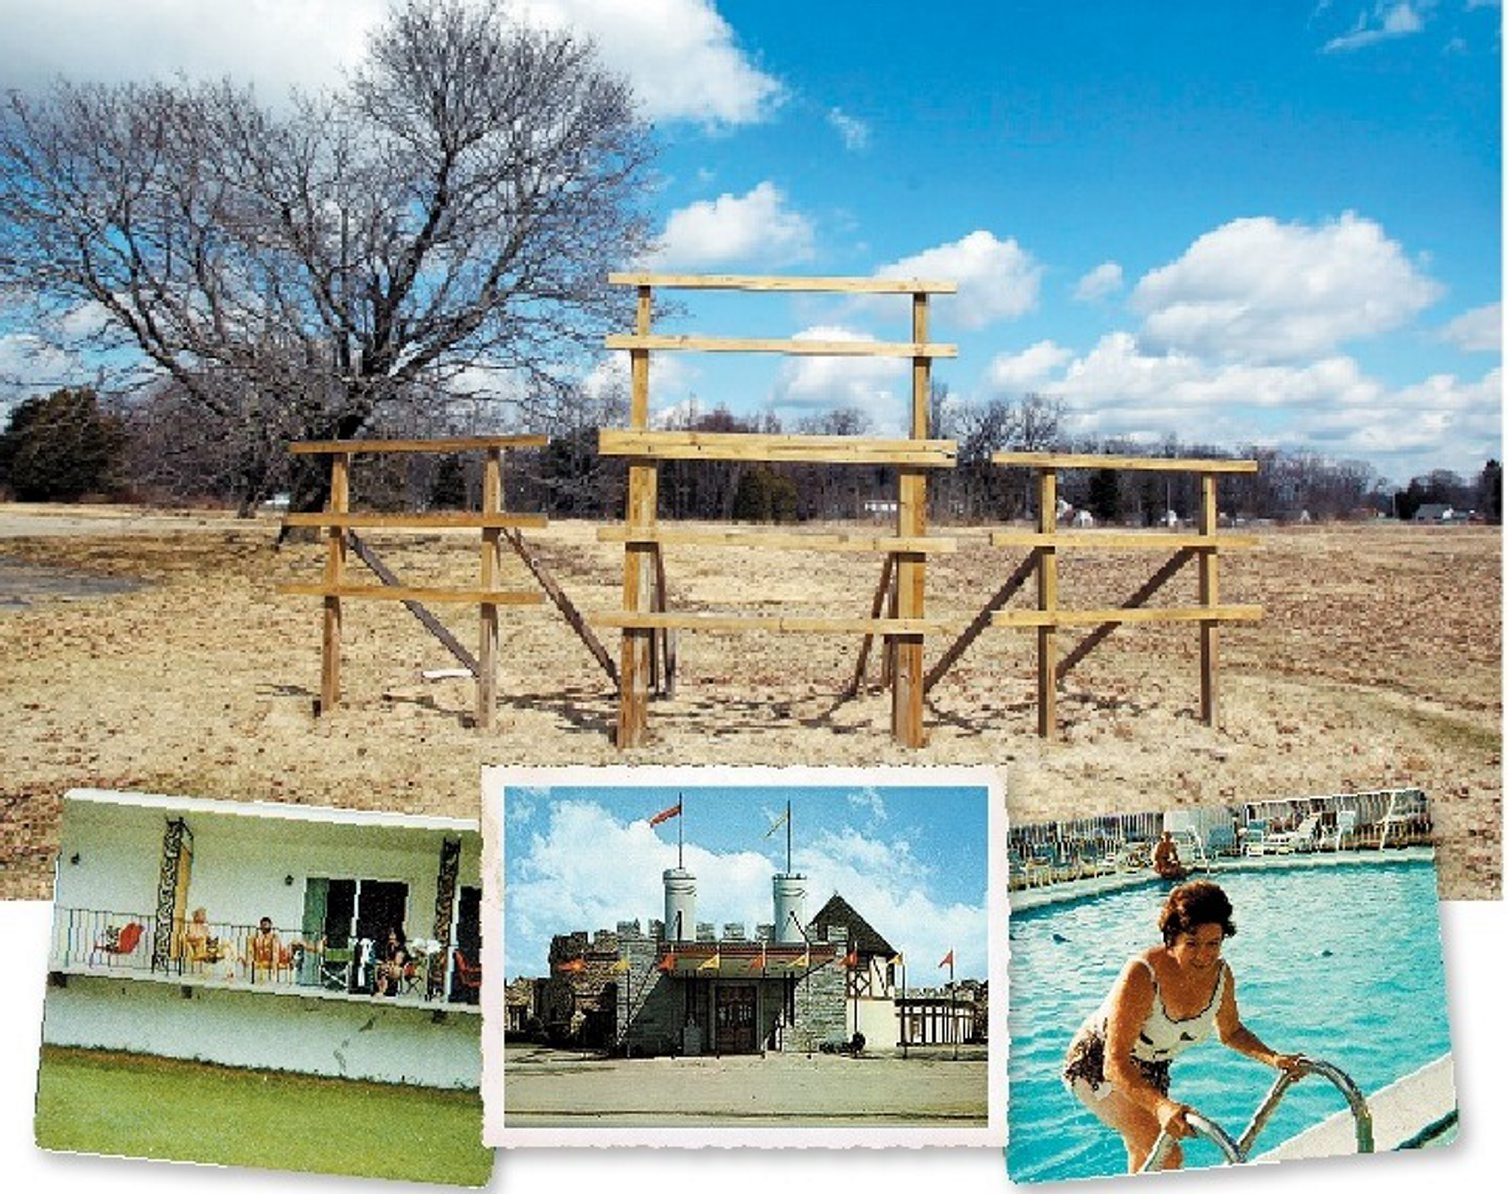 This vacant lot at one time was the Castle property, a motel, restaurant and resort just outside Olean. The restaurant, below center, was a fine-dining establishment that was nationally known. On either side are snapshots of the author's family in the late 1970s. Left, his grandfather, stepfather and mother relax on a balcony overlooking the golf course. Right, his grandmother gets ready to go for a swim.